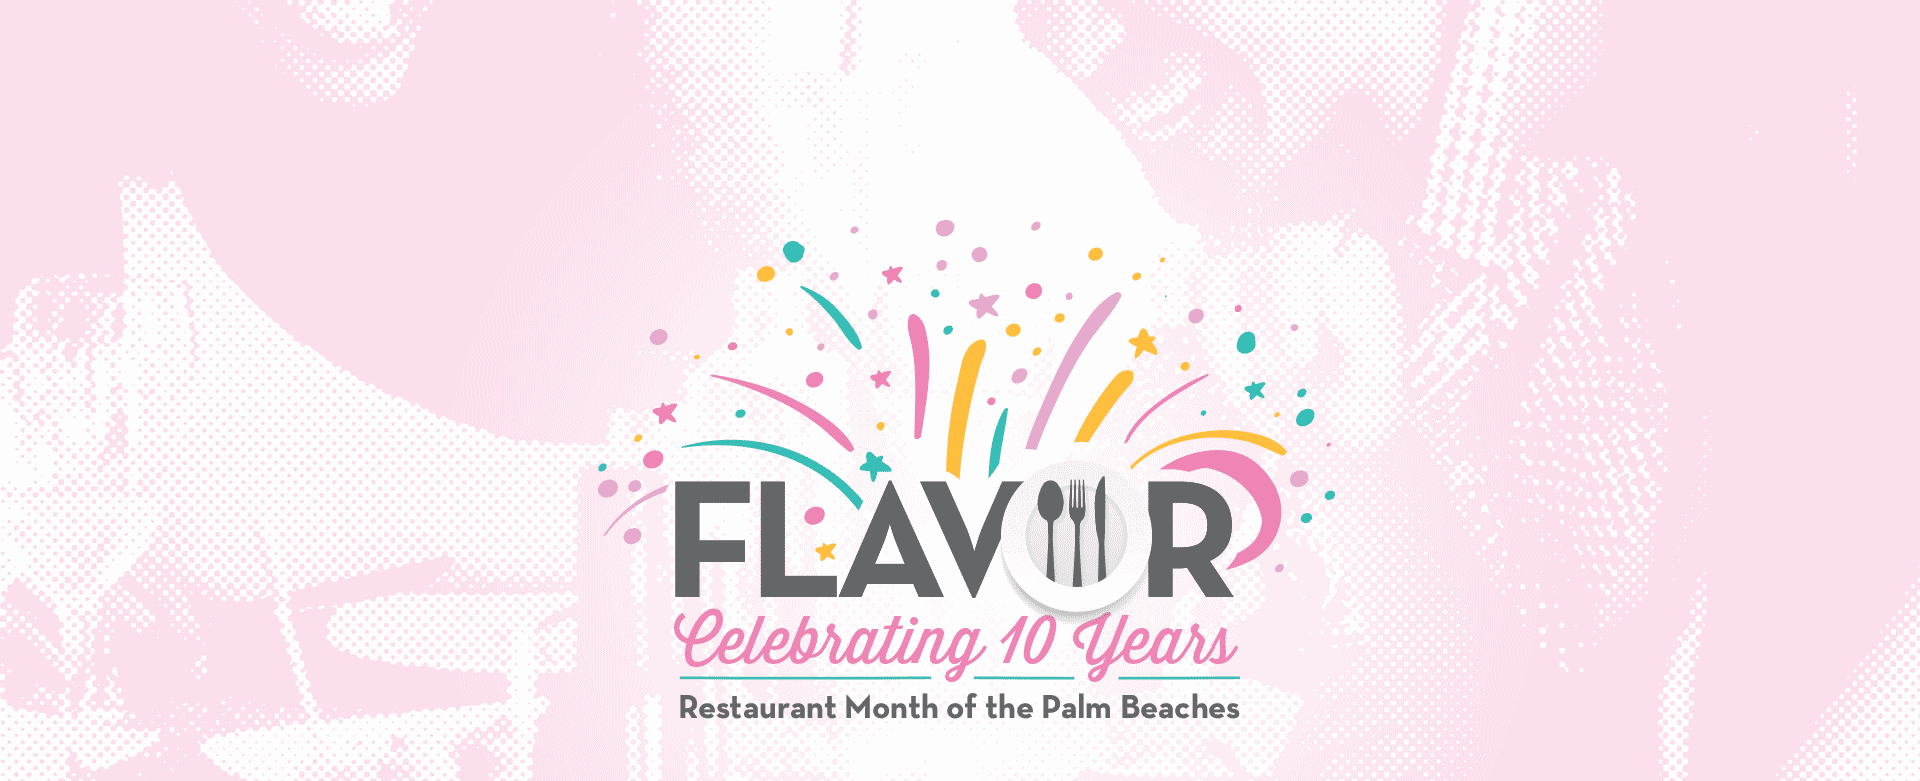 Flavor-10-Year-interiorpages.png